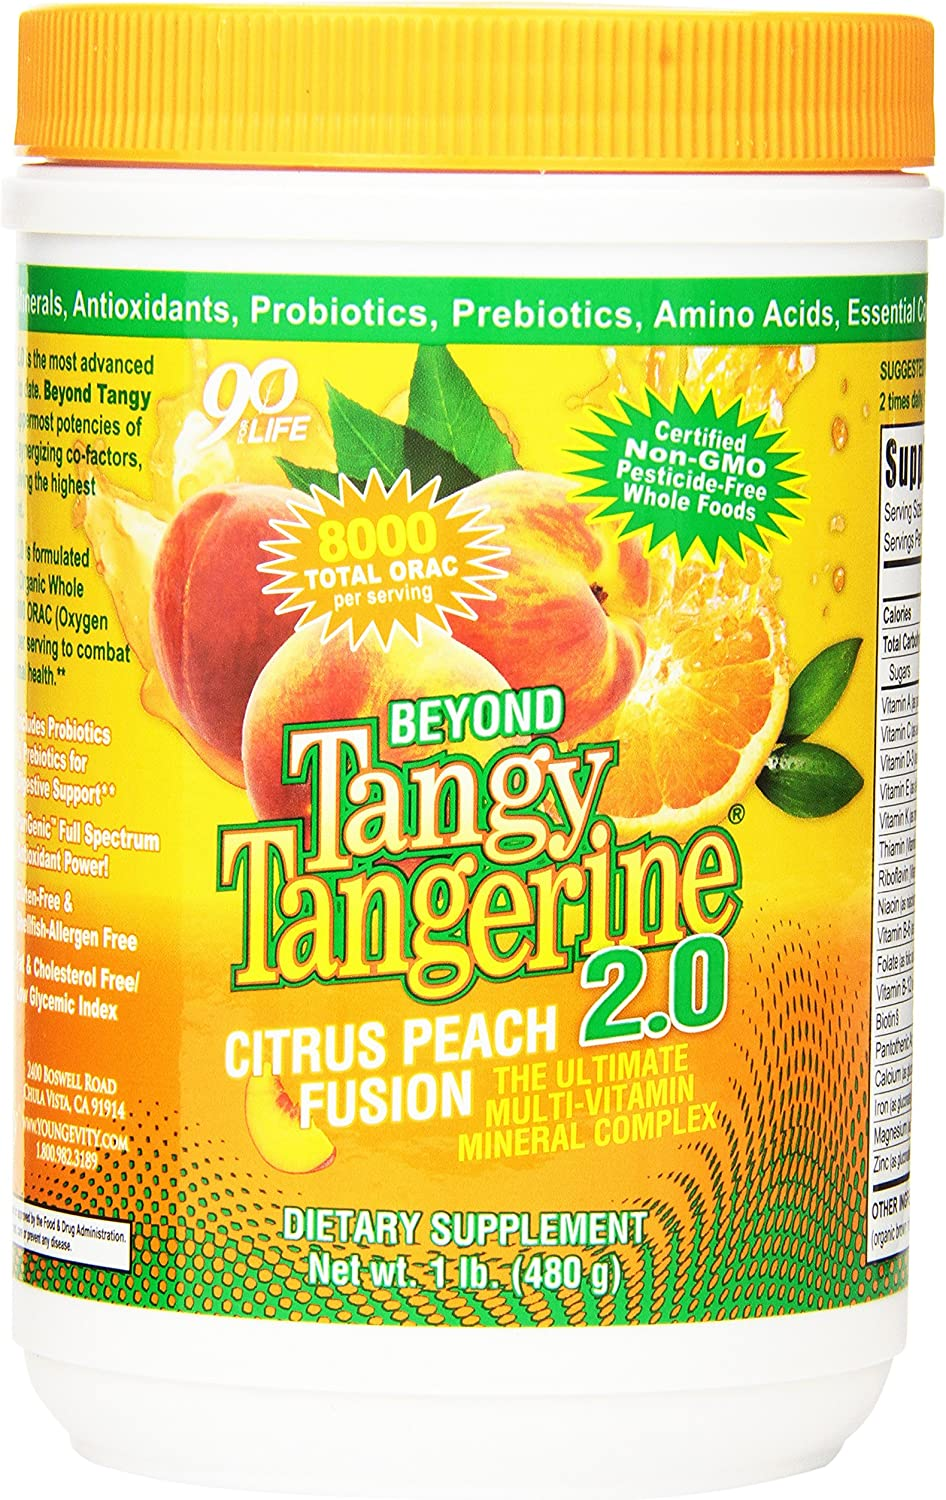 BTT 2.0 Citrus Peach Fusion 480 g canister – 6 Pack